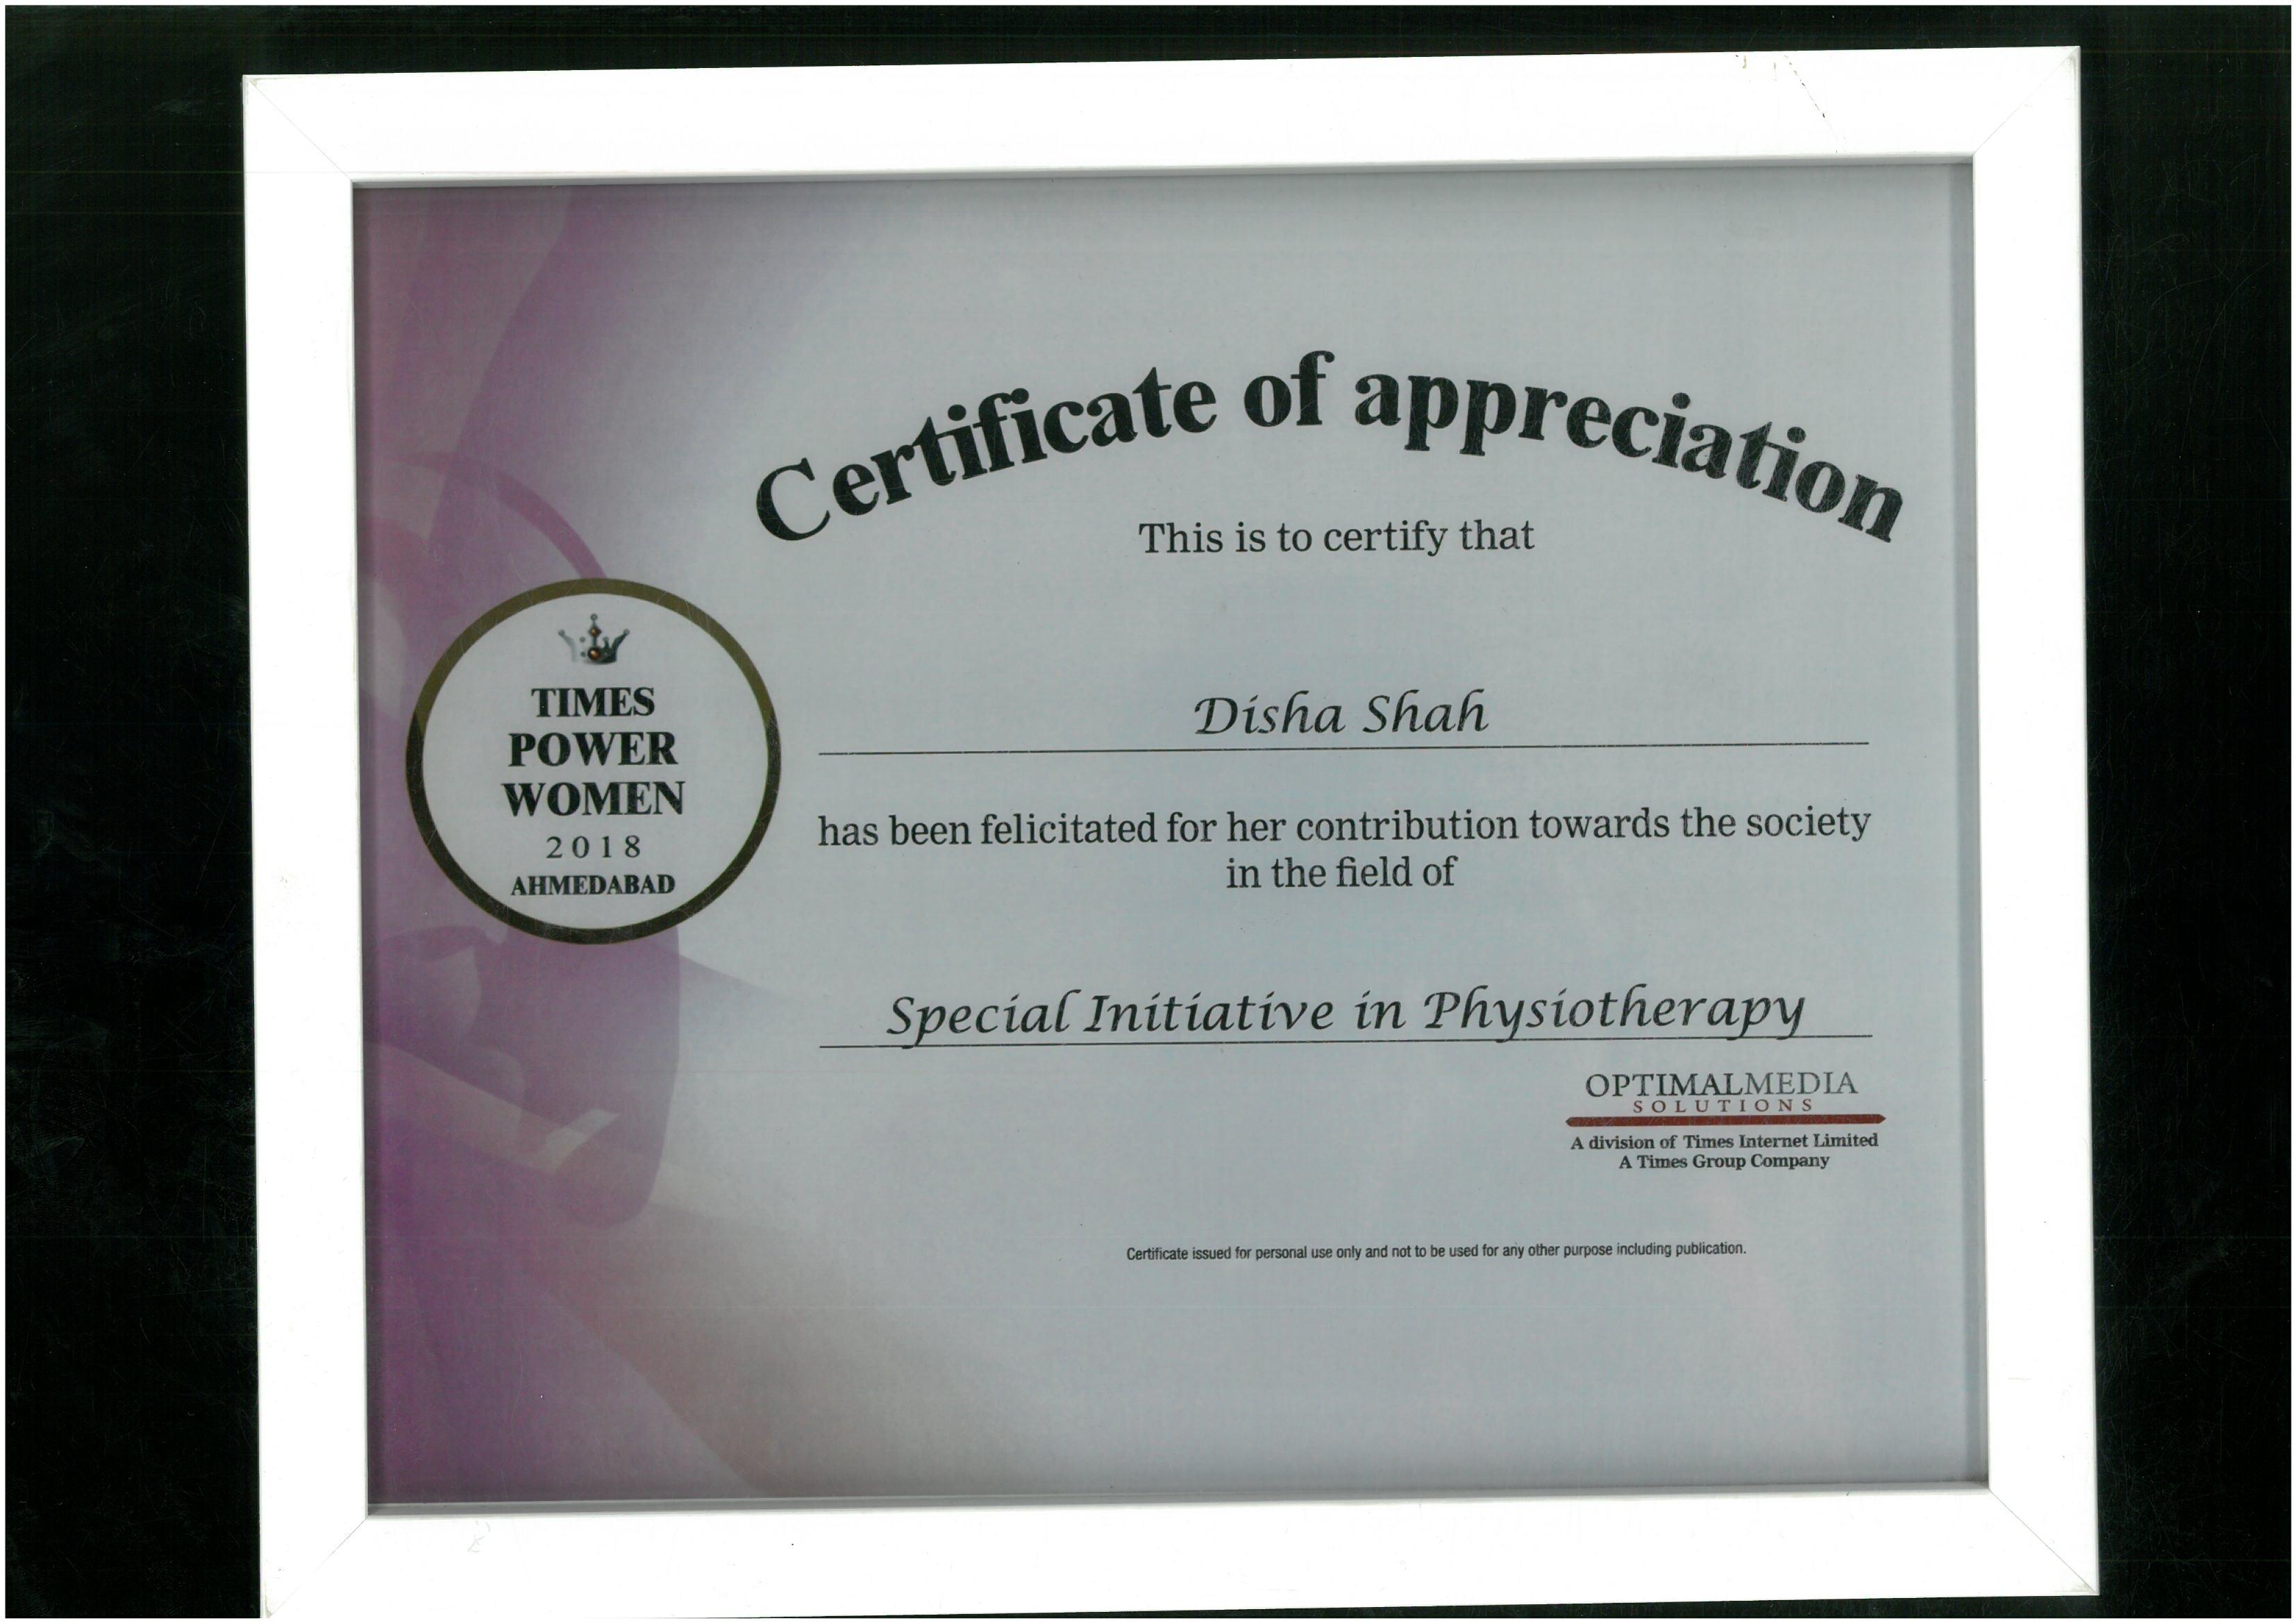 TIMES Power Woman, 2018 to Dr Disha Shah for her Special Initiative in Physiotherapy.